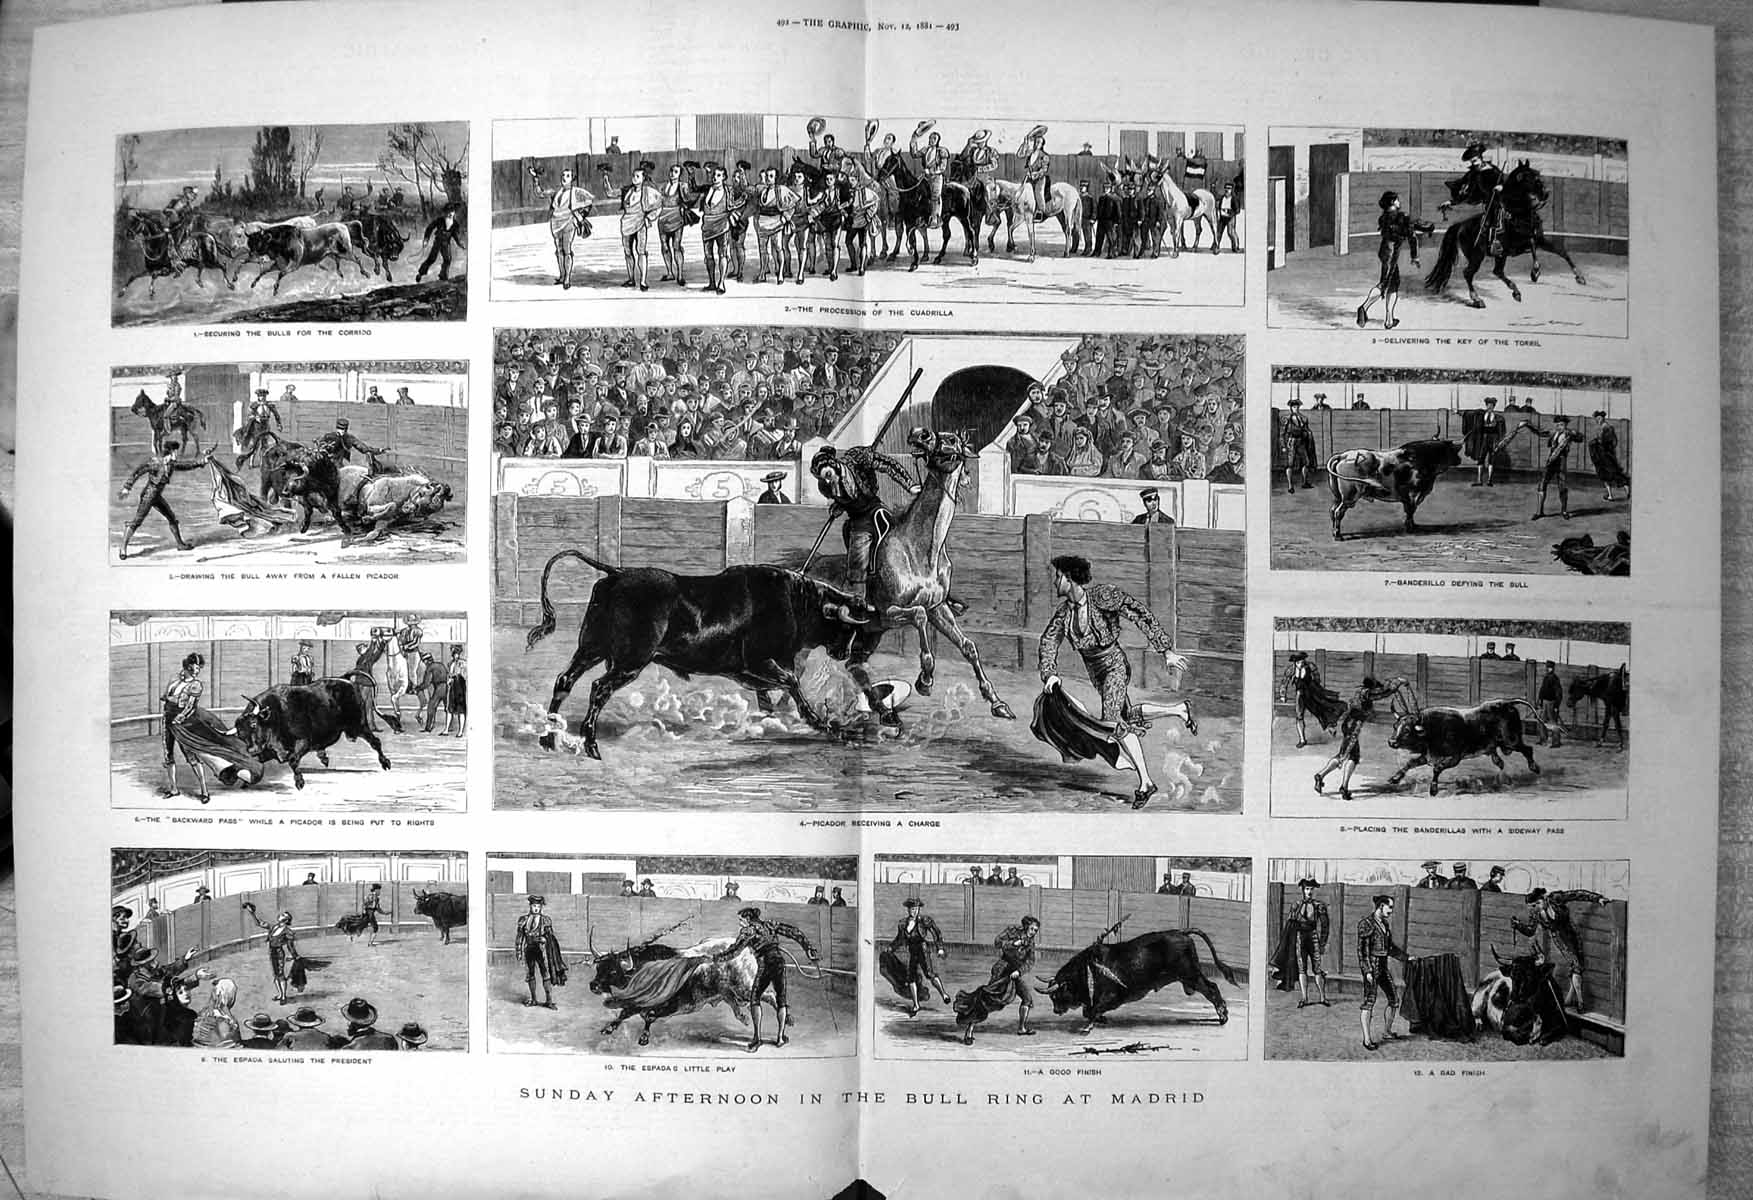 Antique-Print-Bull-Ring-Madrid-Bulls-Corrido-Picador-Charge-Banderillo-1881